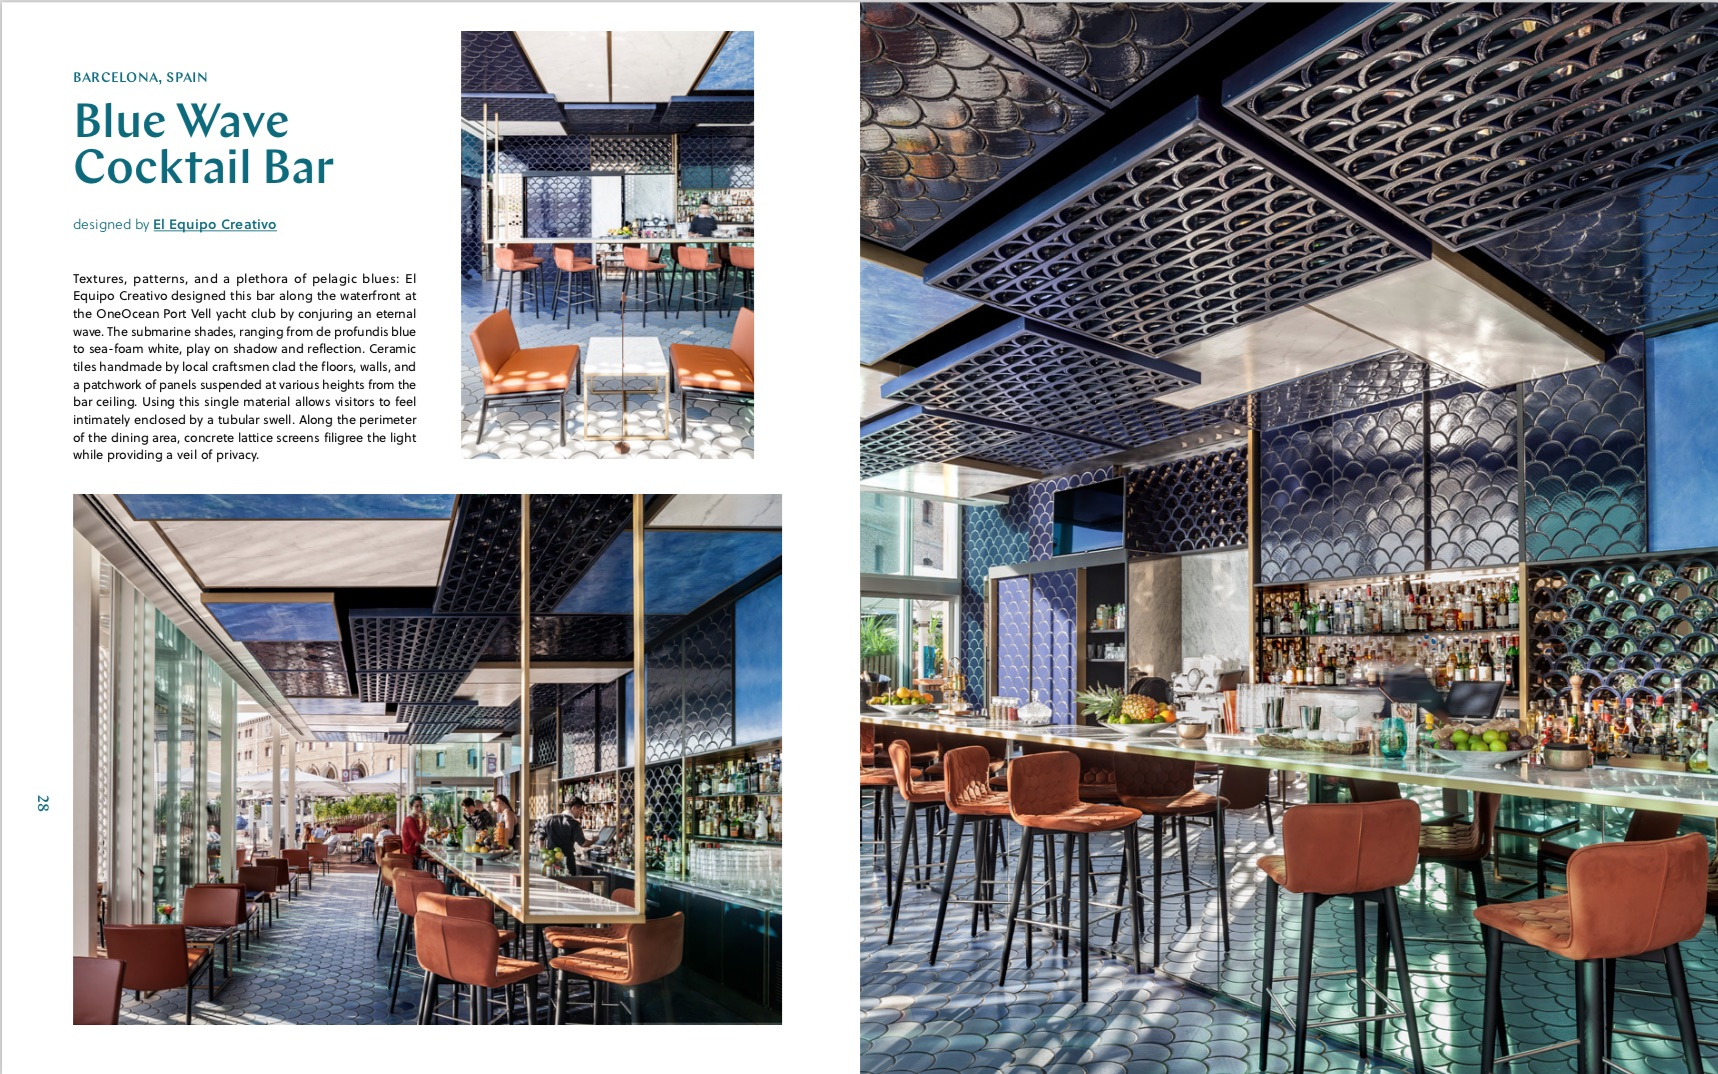 From Appetizer: New Interiors for Restaurants and Cafes copyright Gestalten 2017